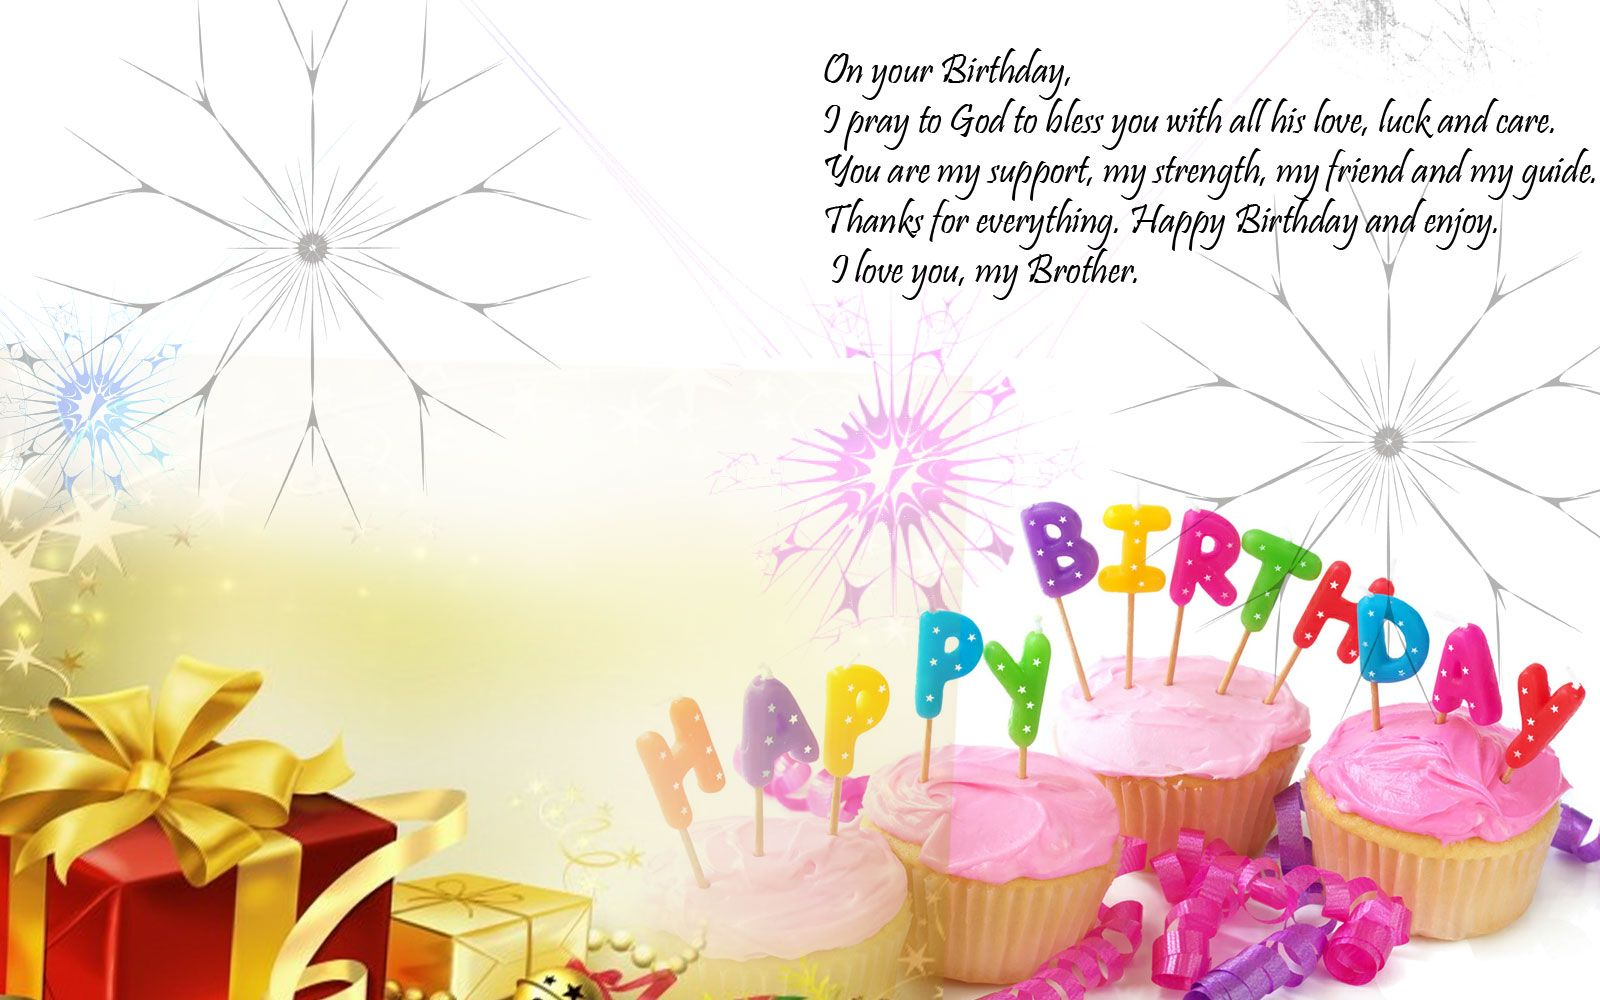 birthday wishes | Best Birthday Greetings for Colleagues ...